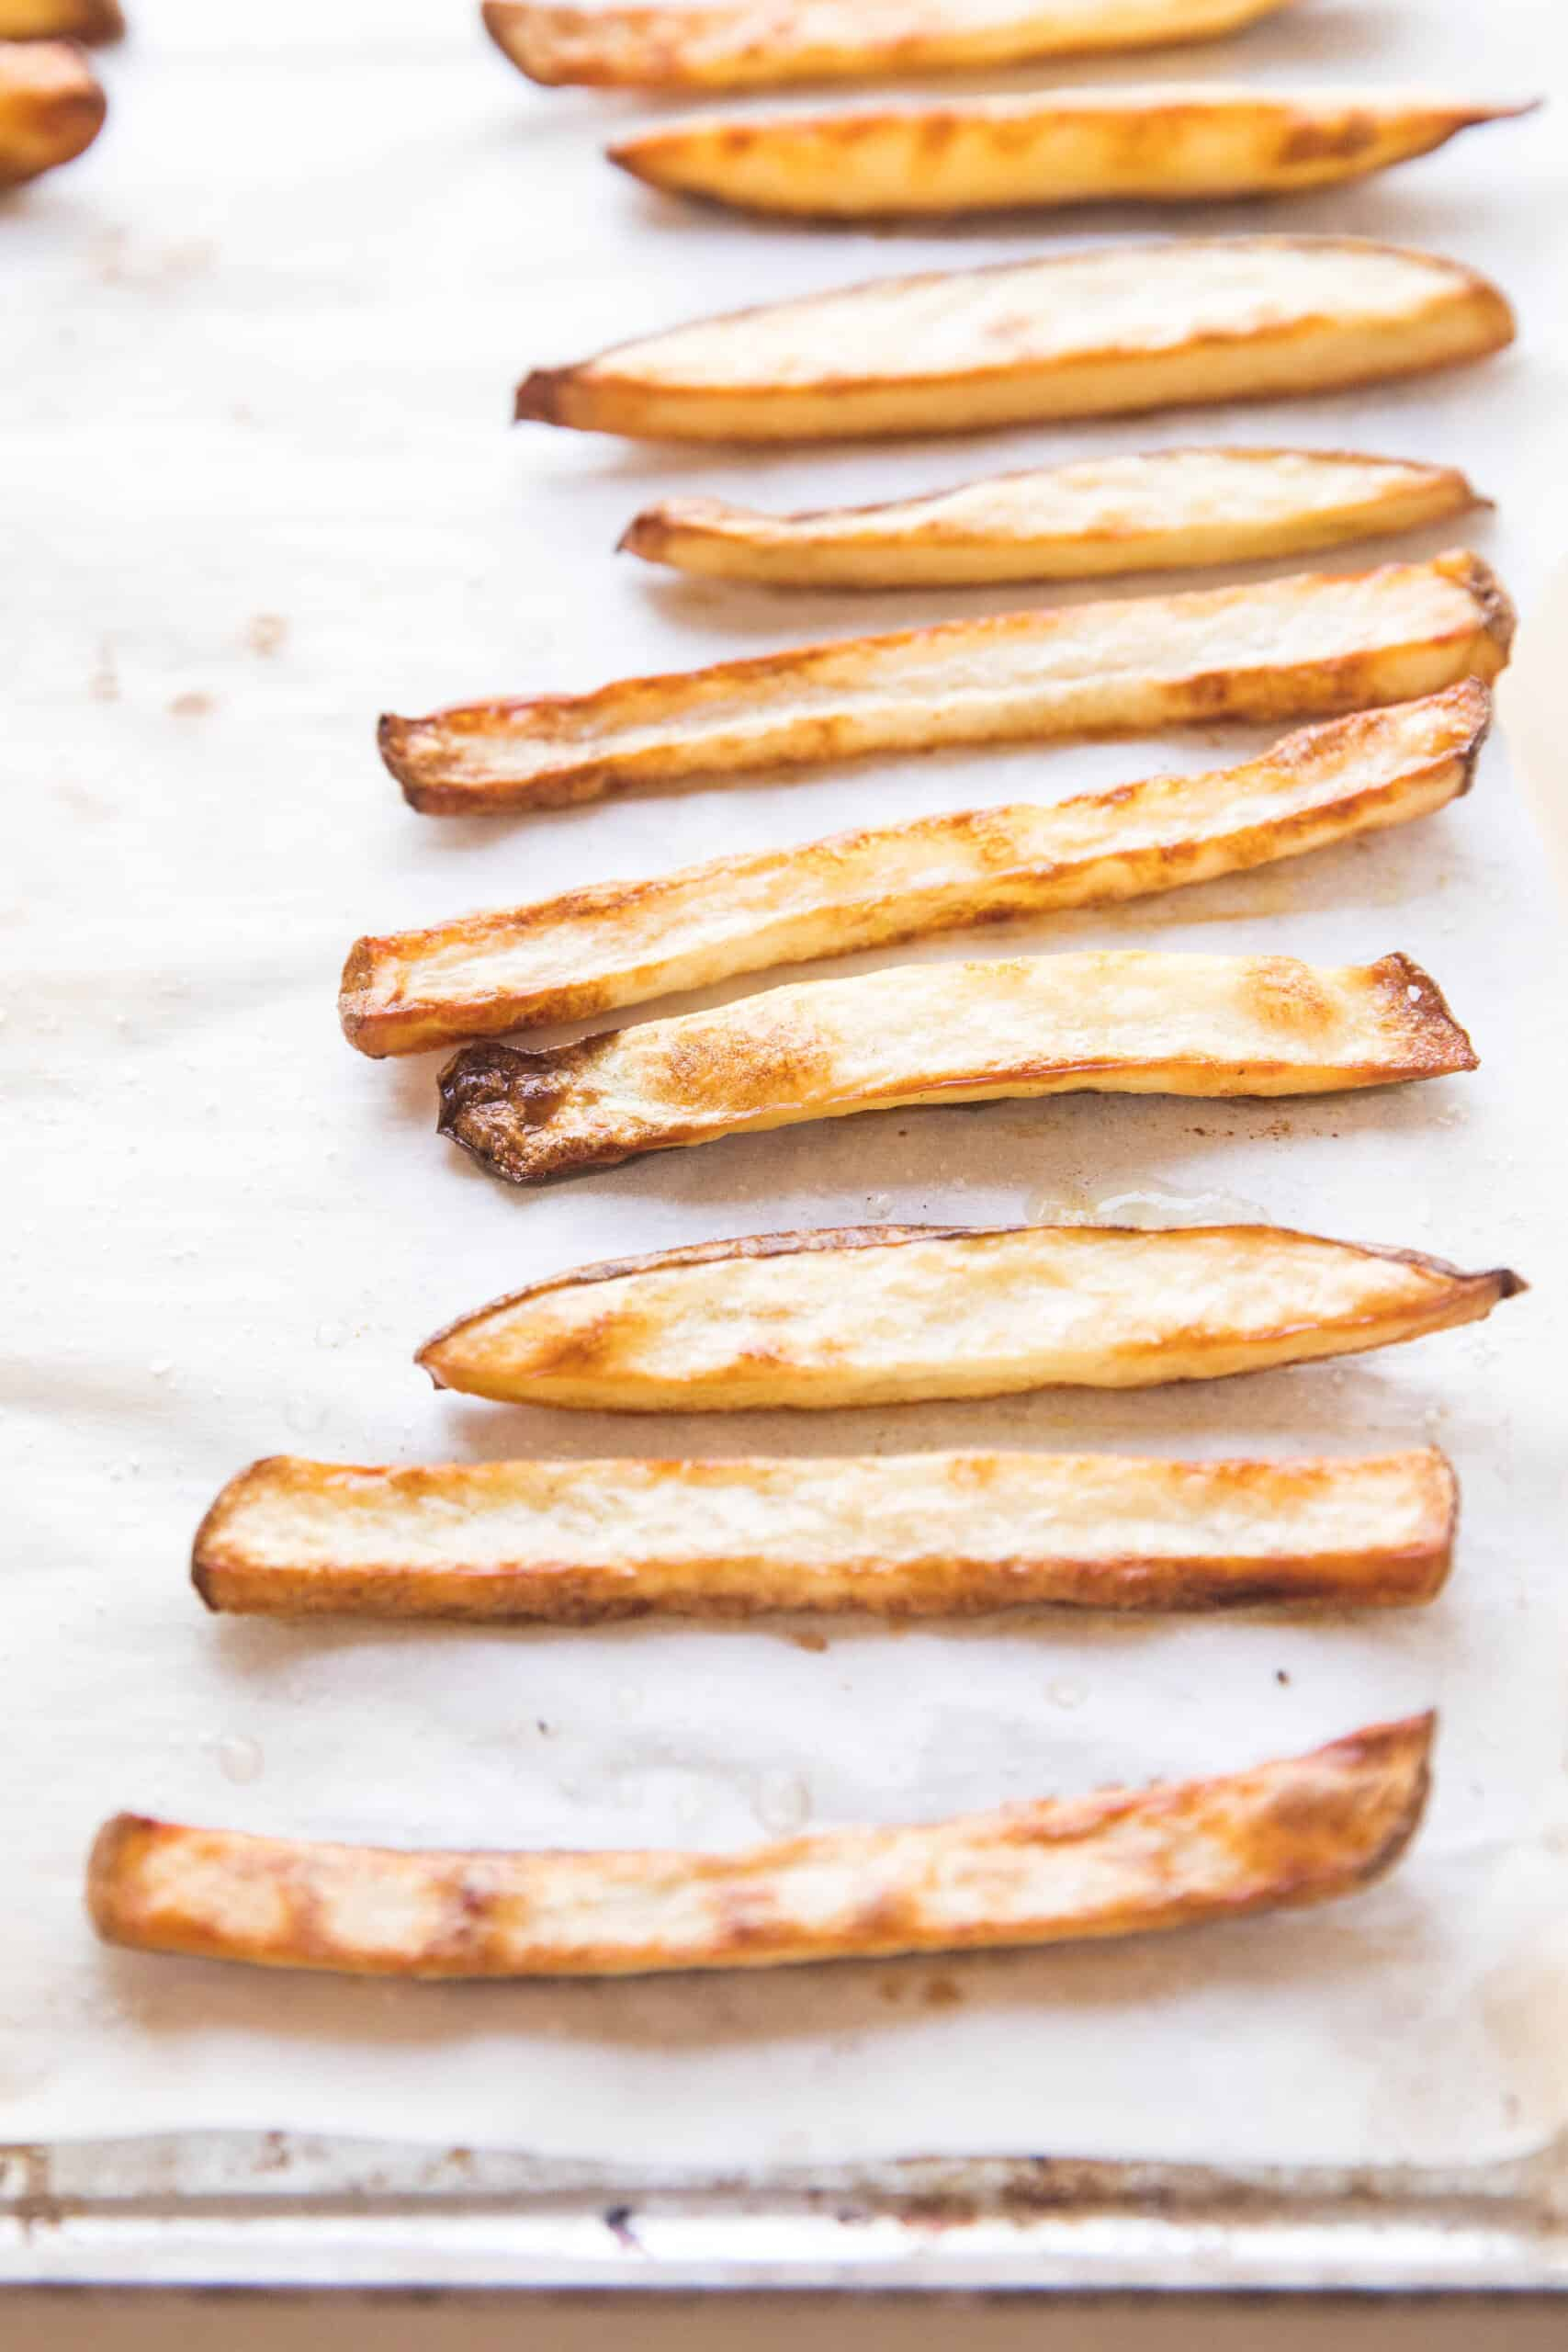 baked french fries on a rimmed baking sheet